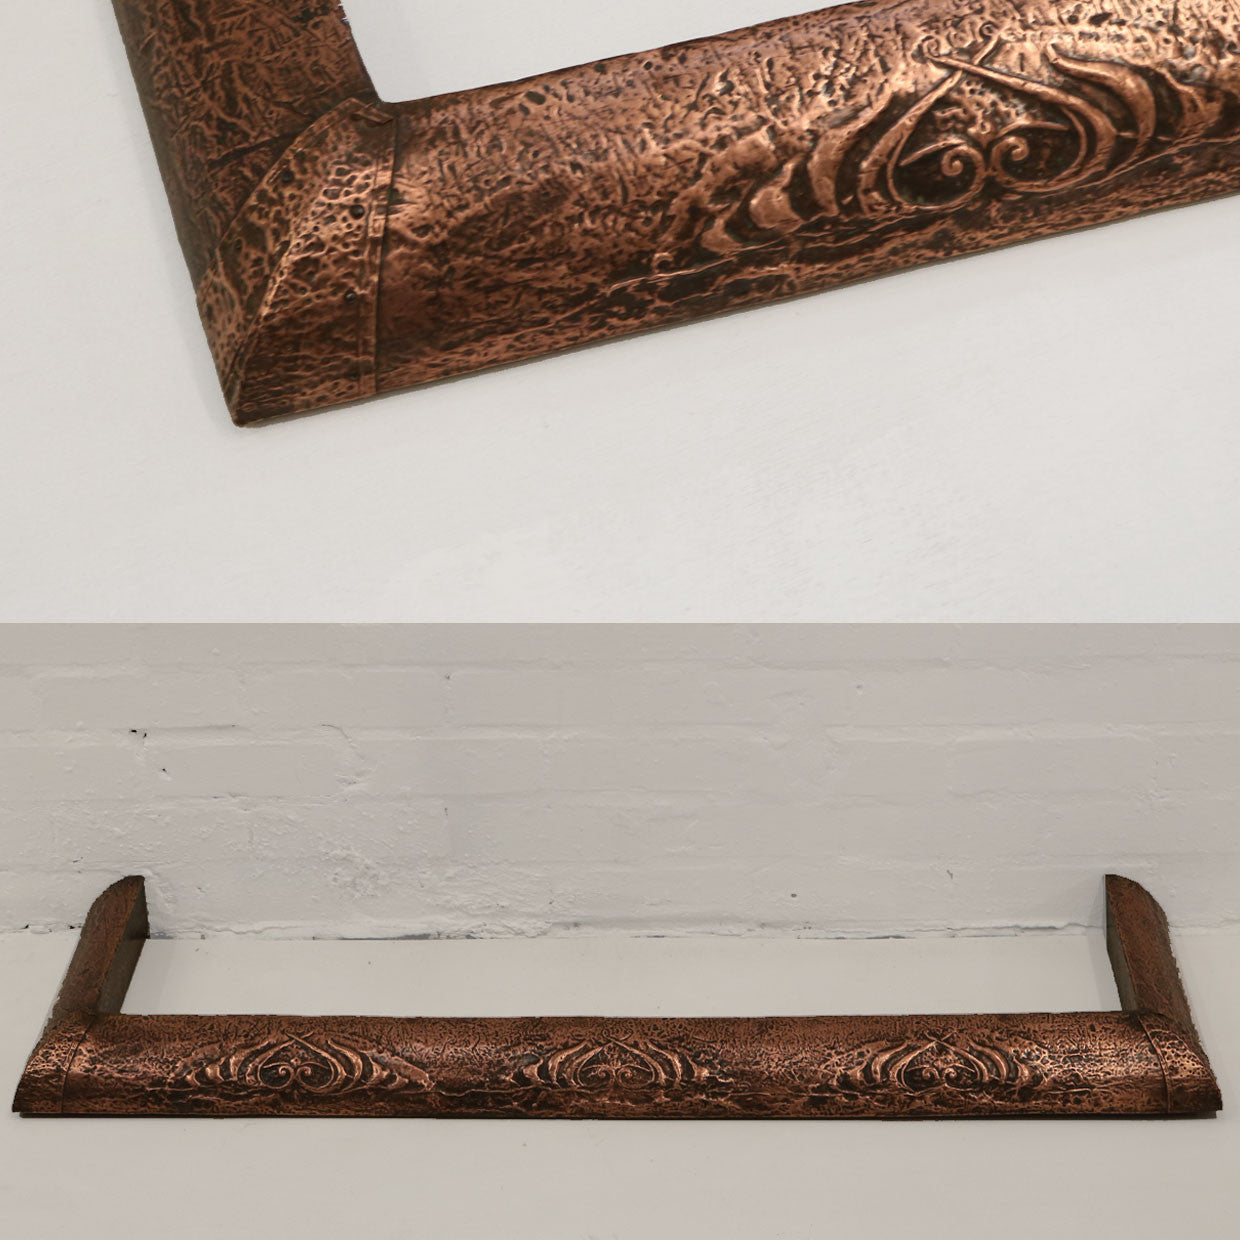 Copper Art Nouveau Fireplace Fender - The Architectural Forum